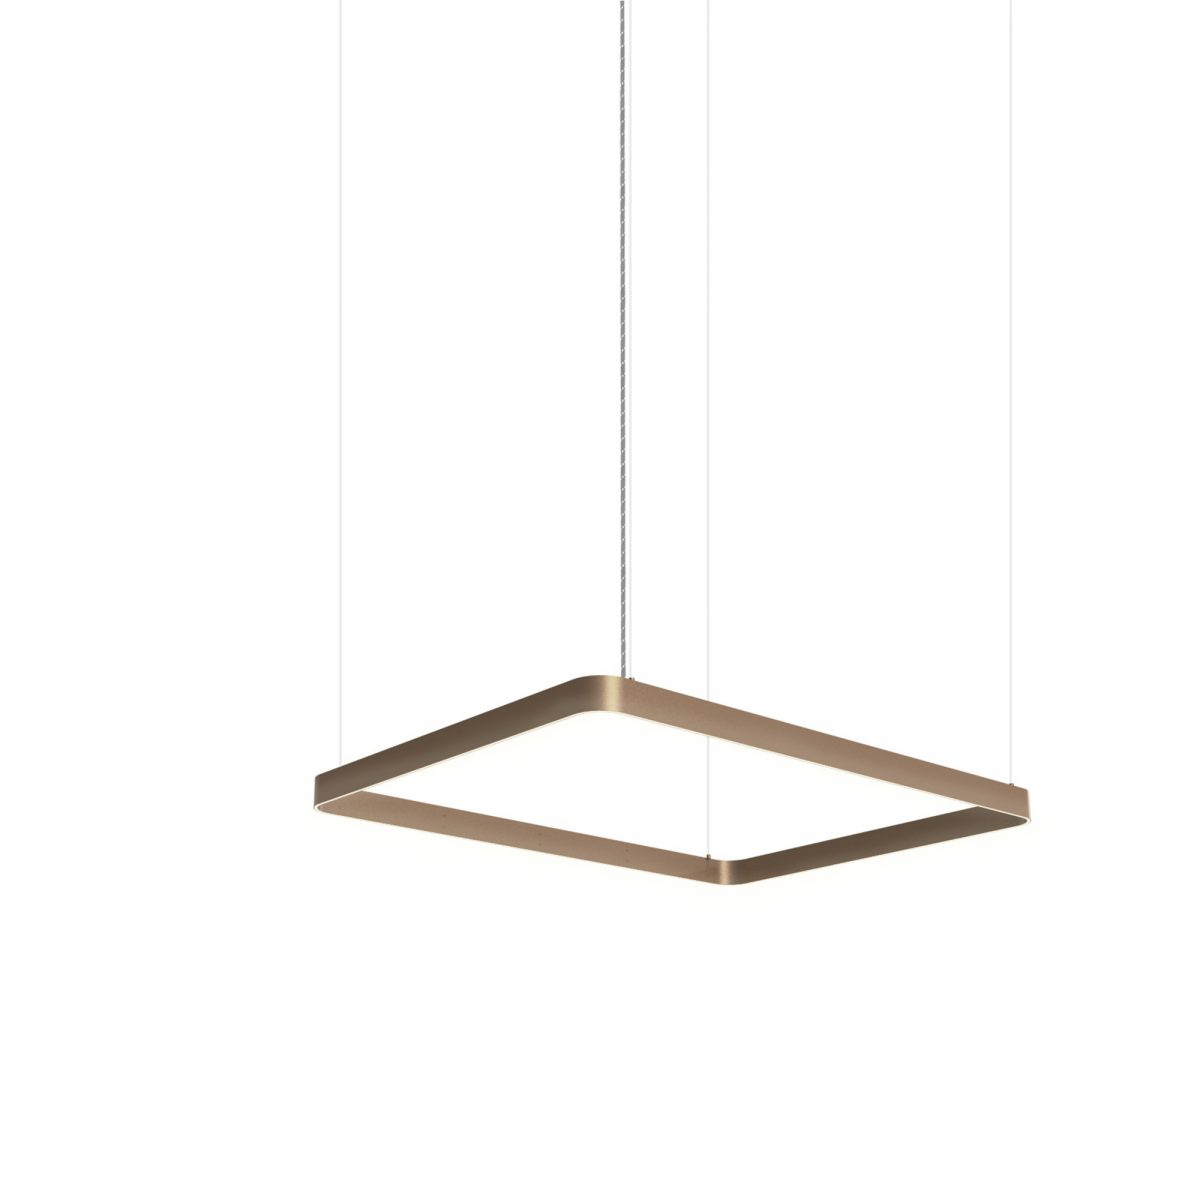 JSPR Eden 75×100 Bronze Rectangle